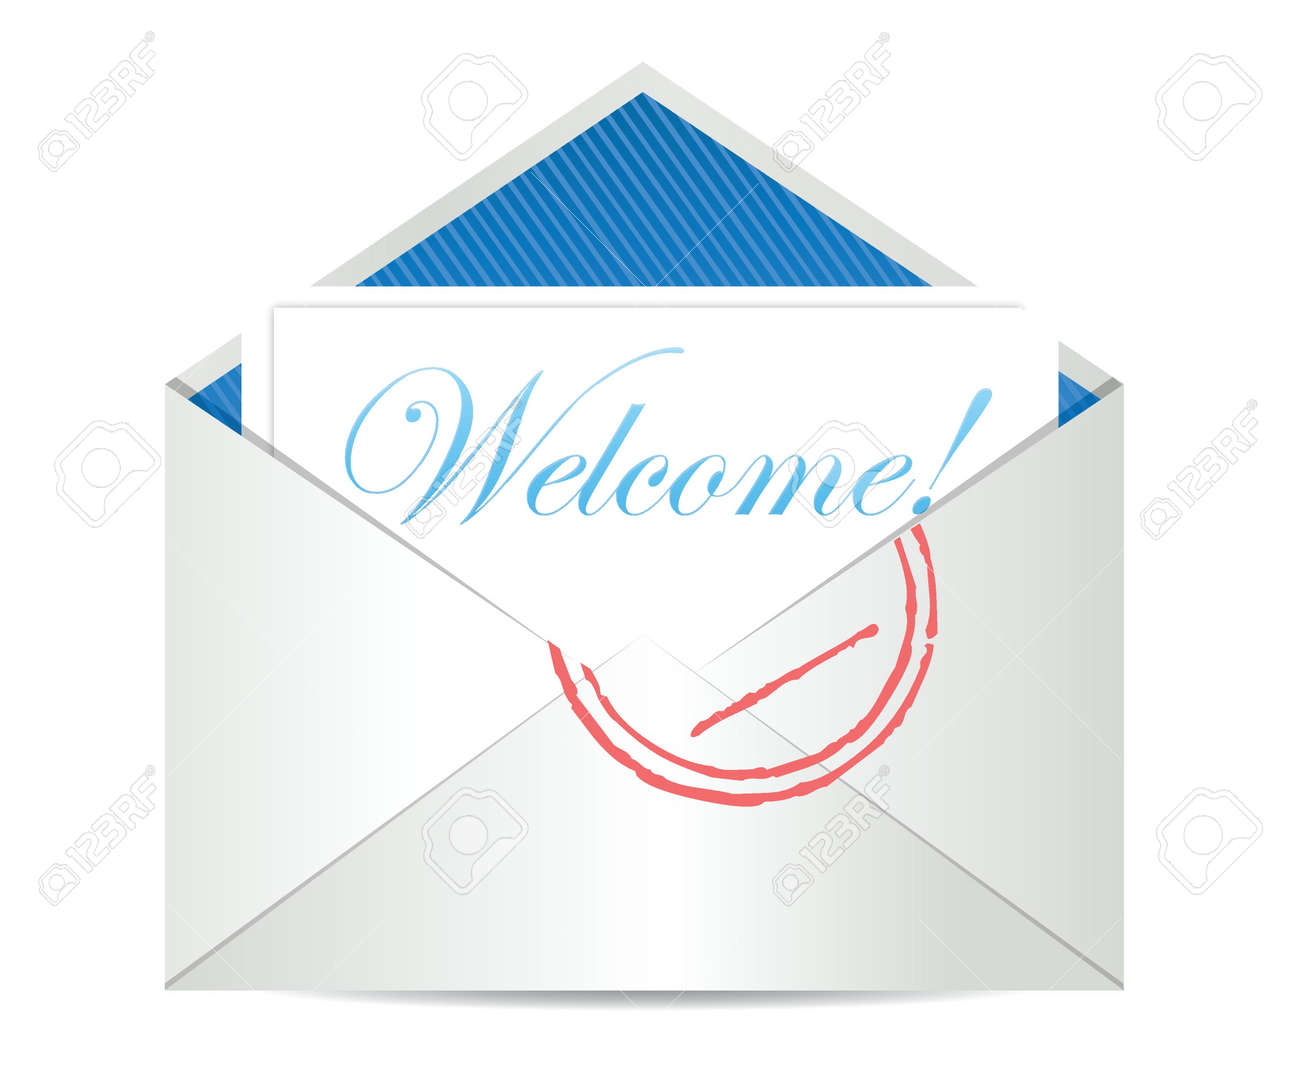 Welcome concept with open blank airmail envelope illustration Stock Vector - 18487064